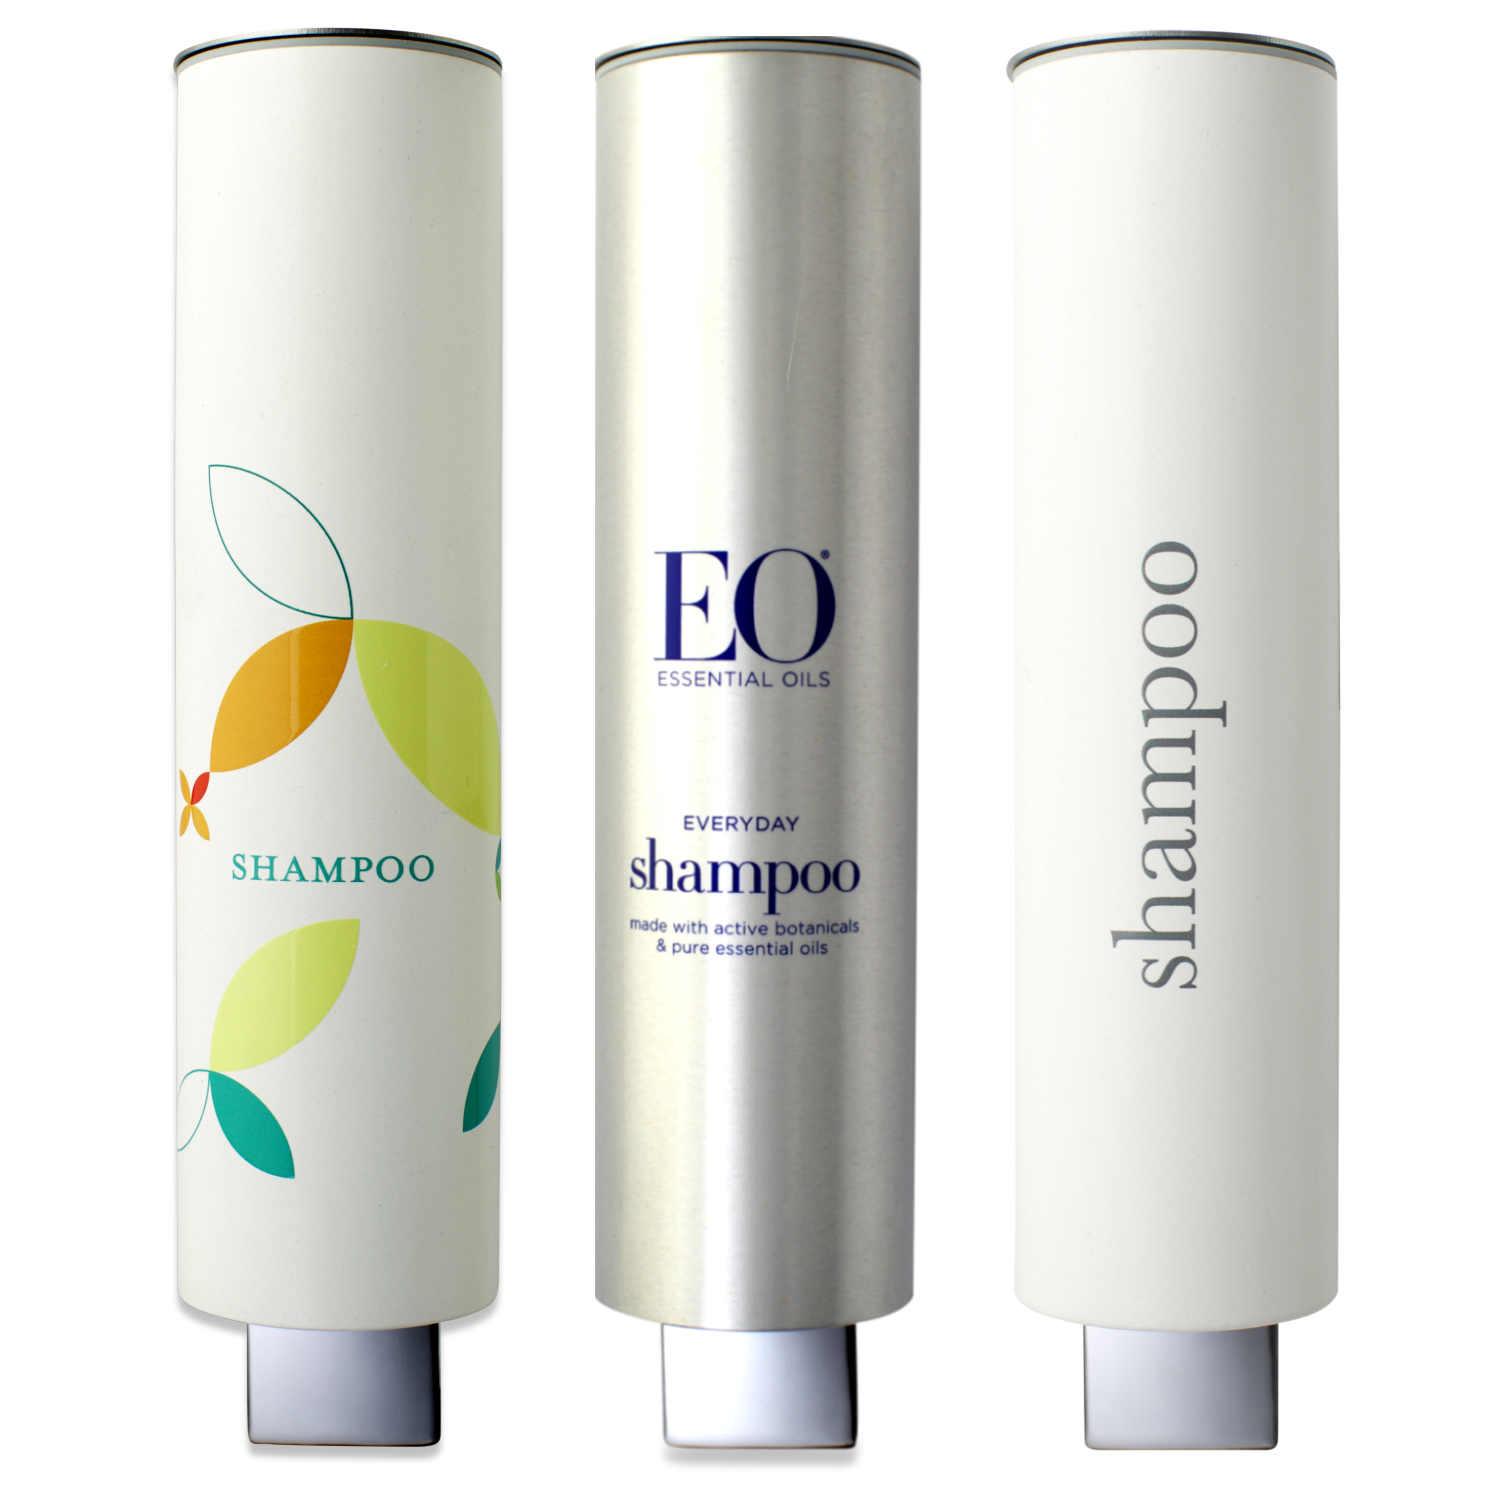 Fully customizable shampoo dispensers for hotels, spas and gyms.